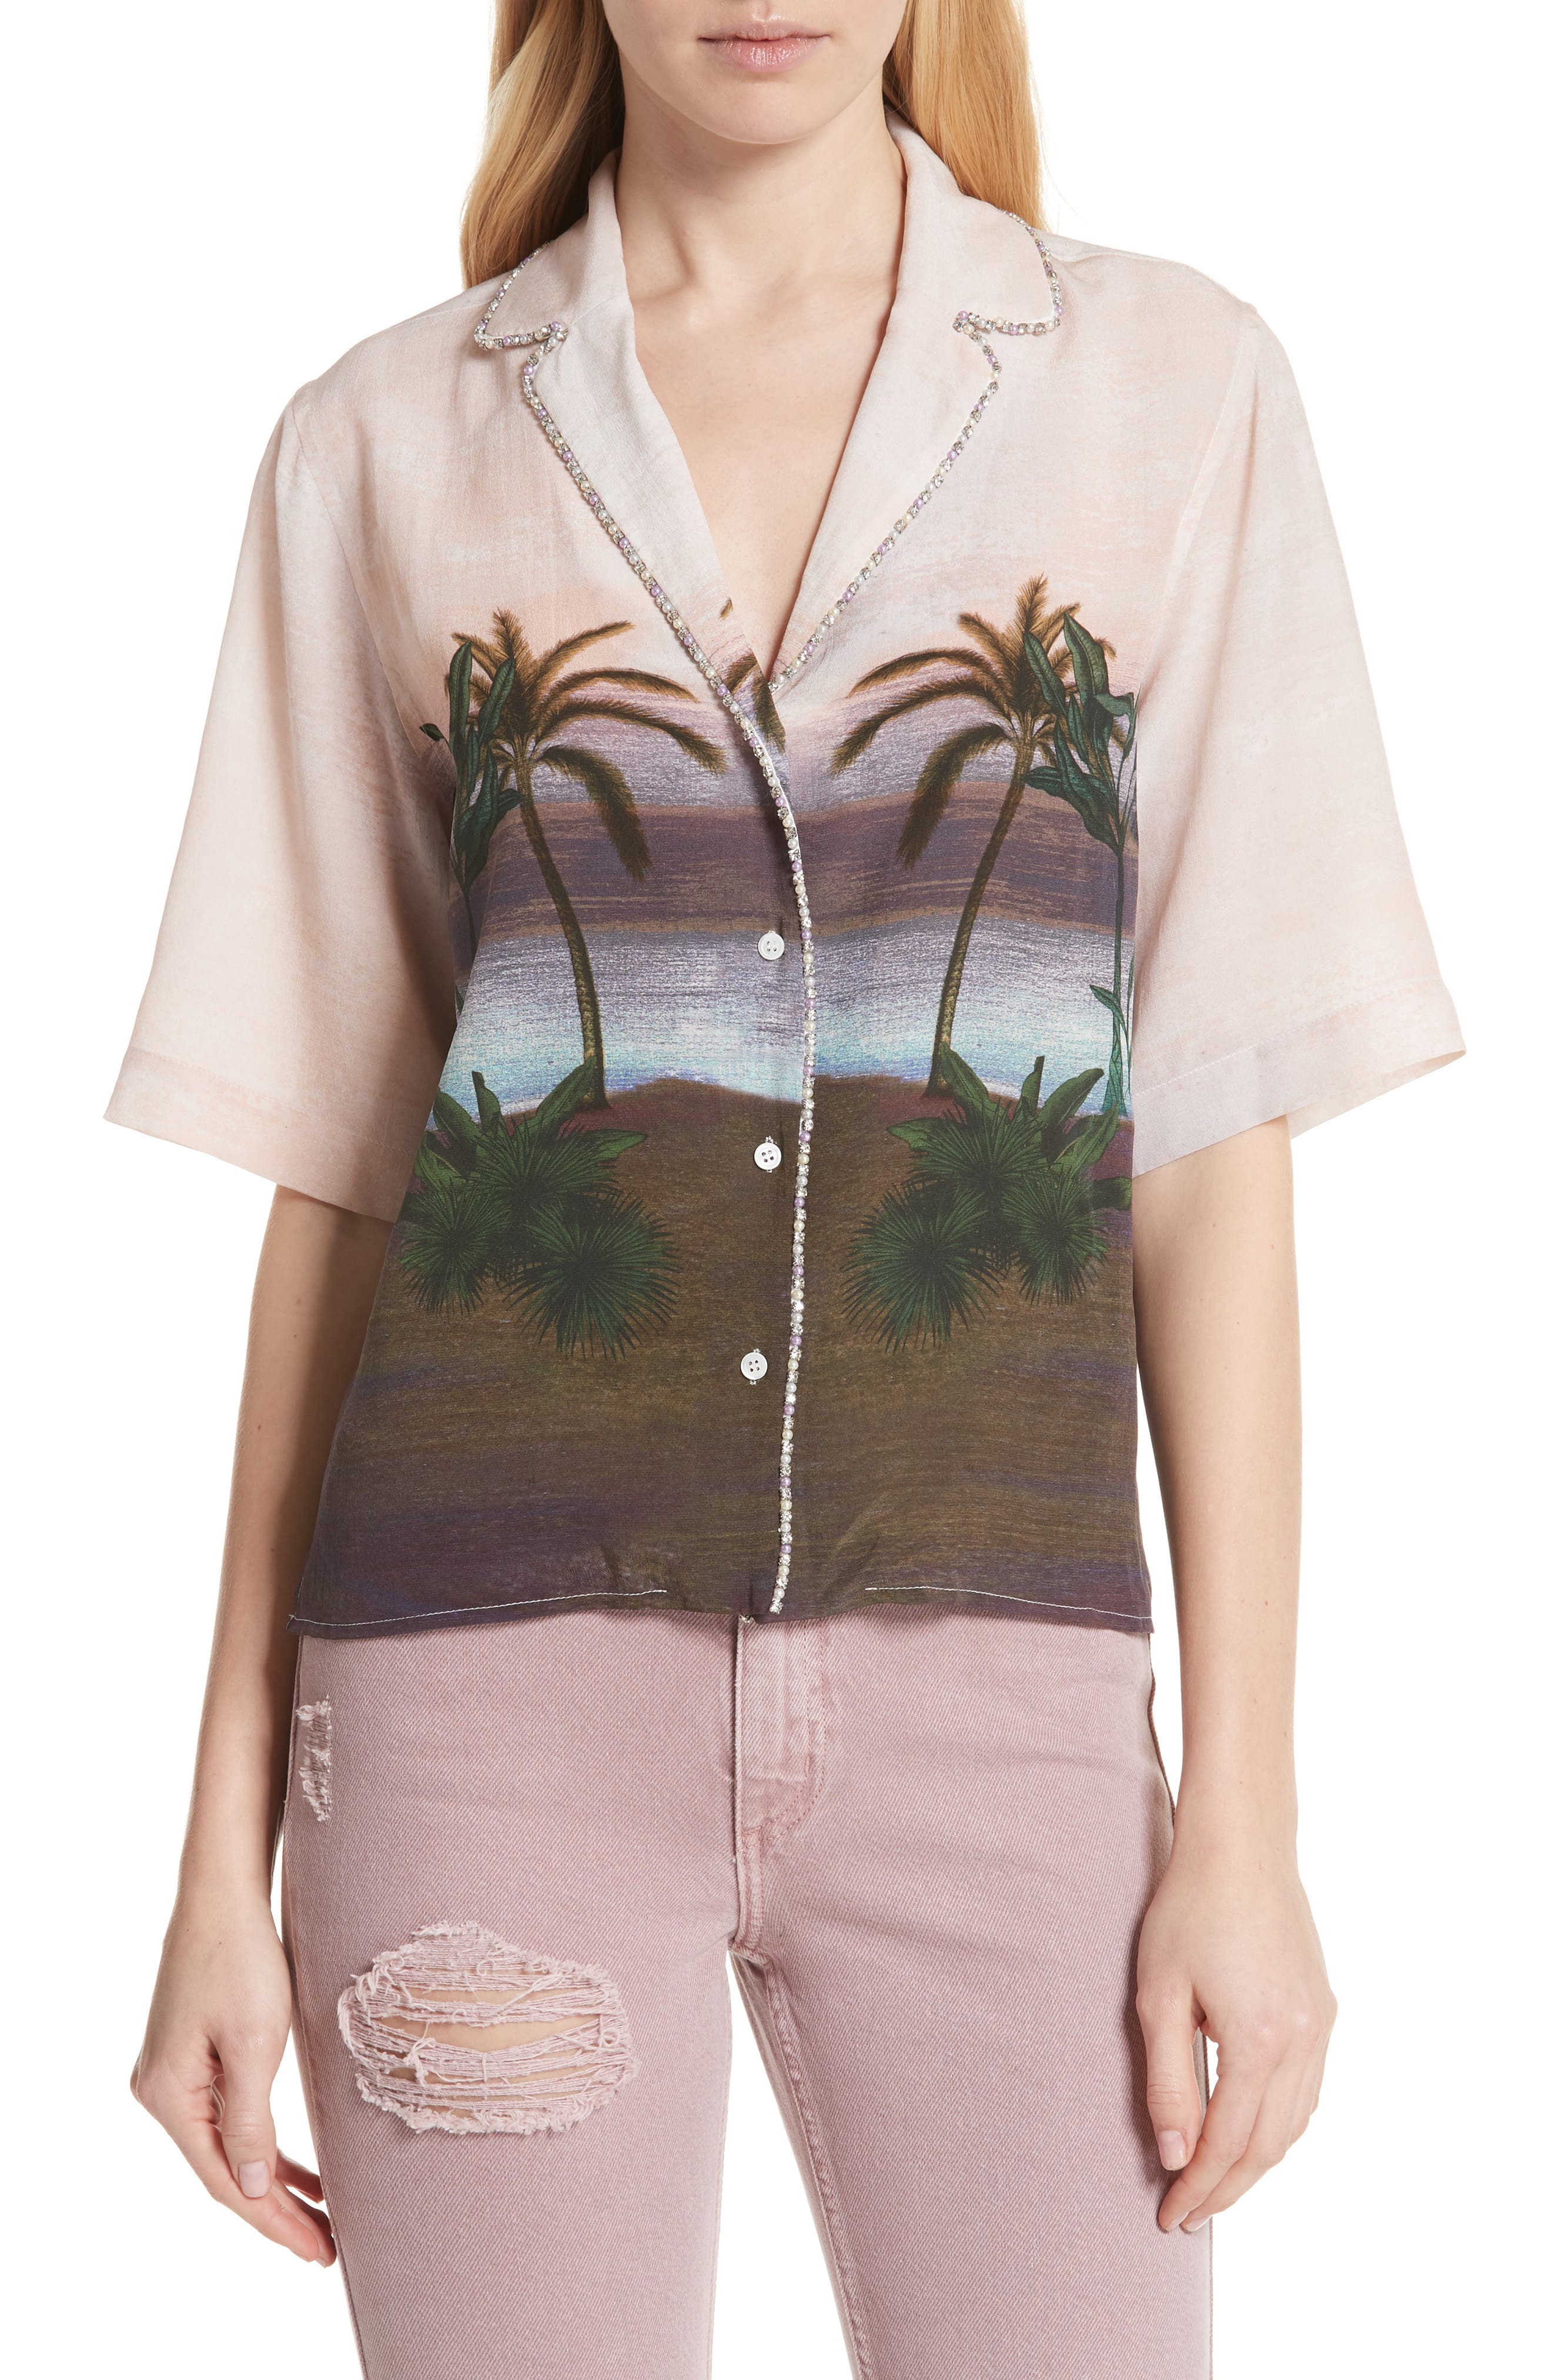 sandro Embellished Tropical Top (Nordstrom Exclusive)